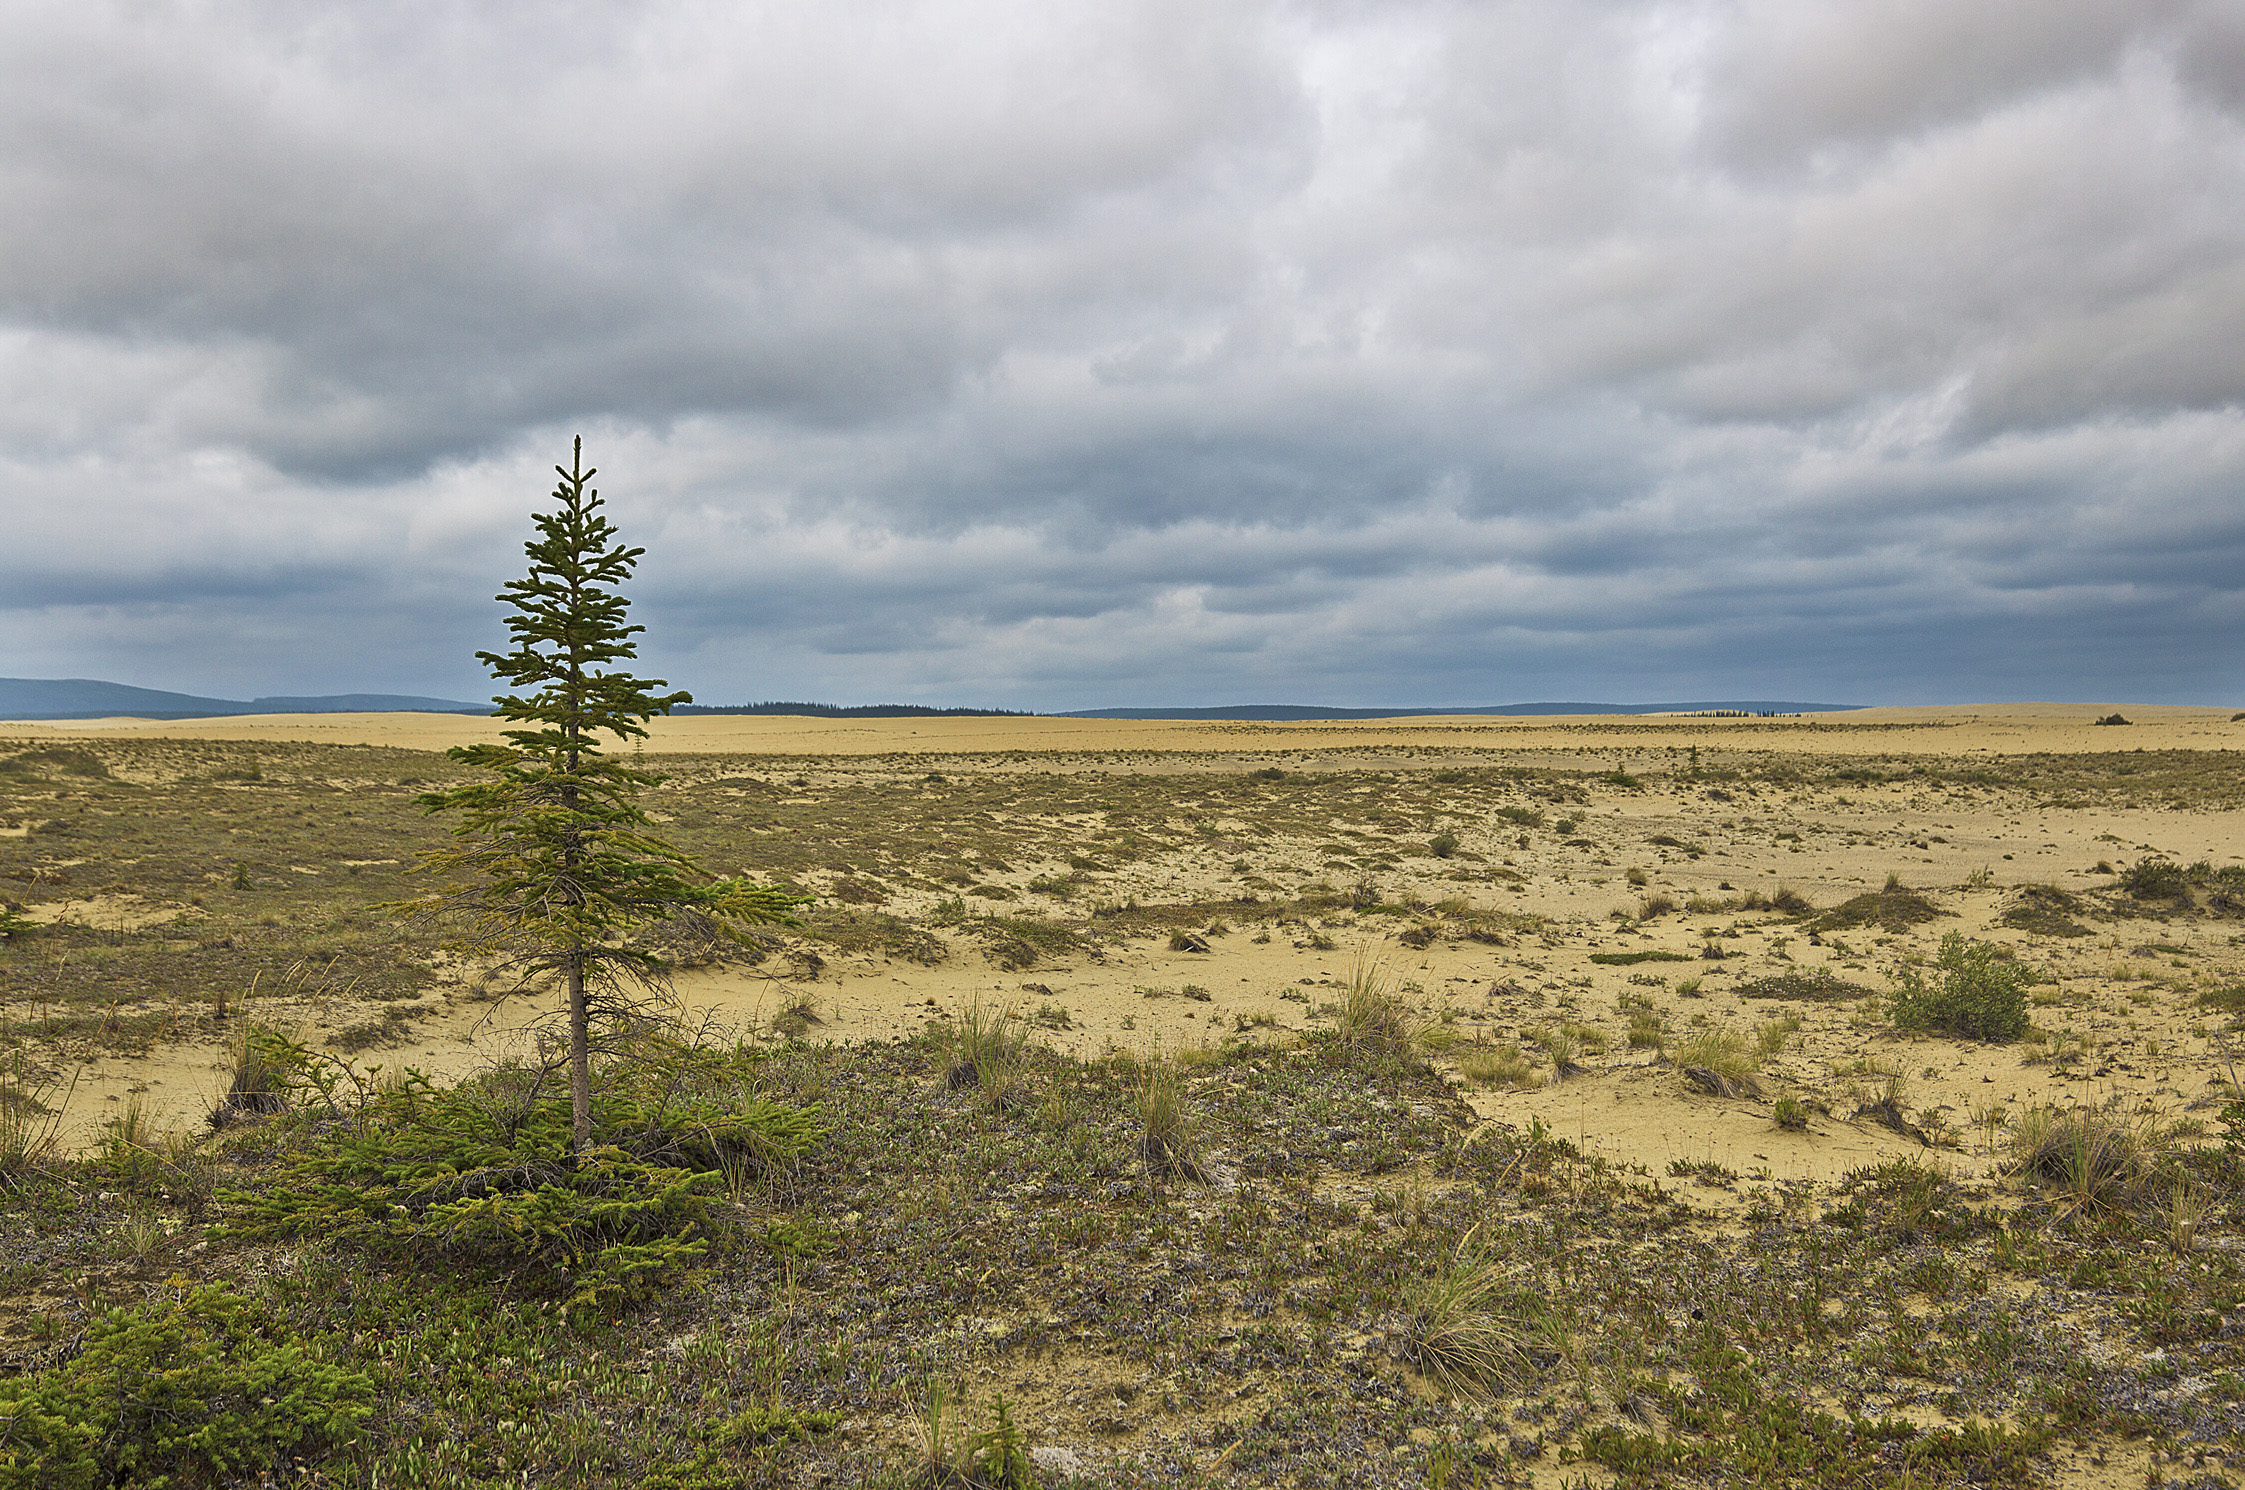 A rogue tree in Kobuk Valley